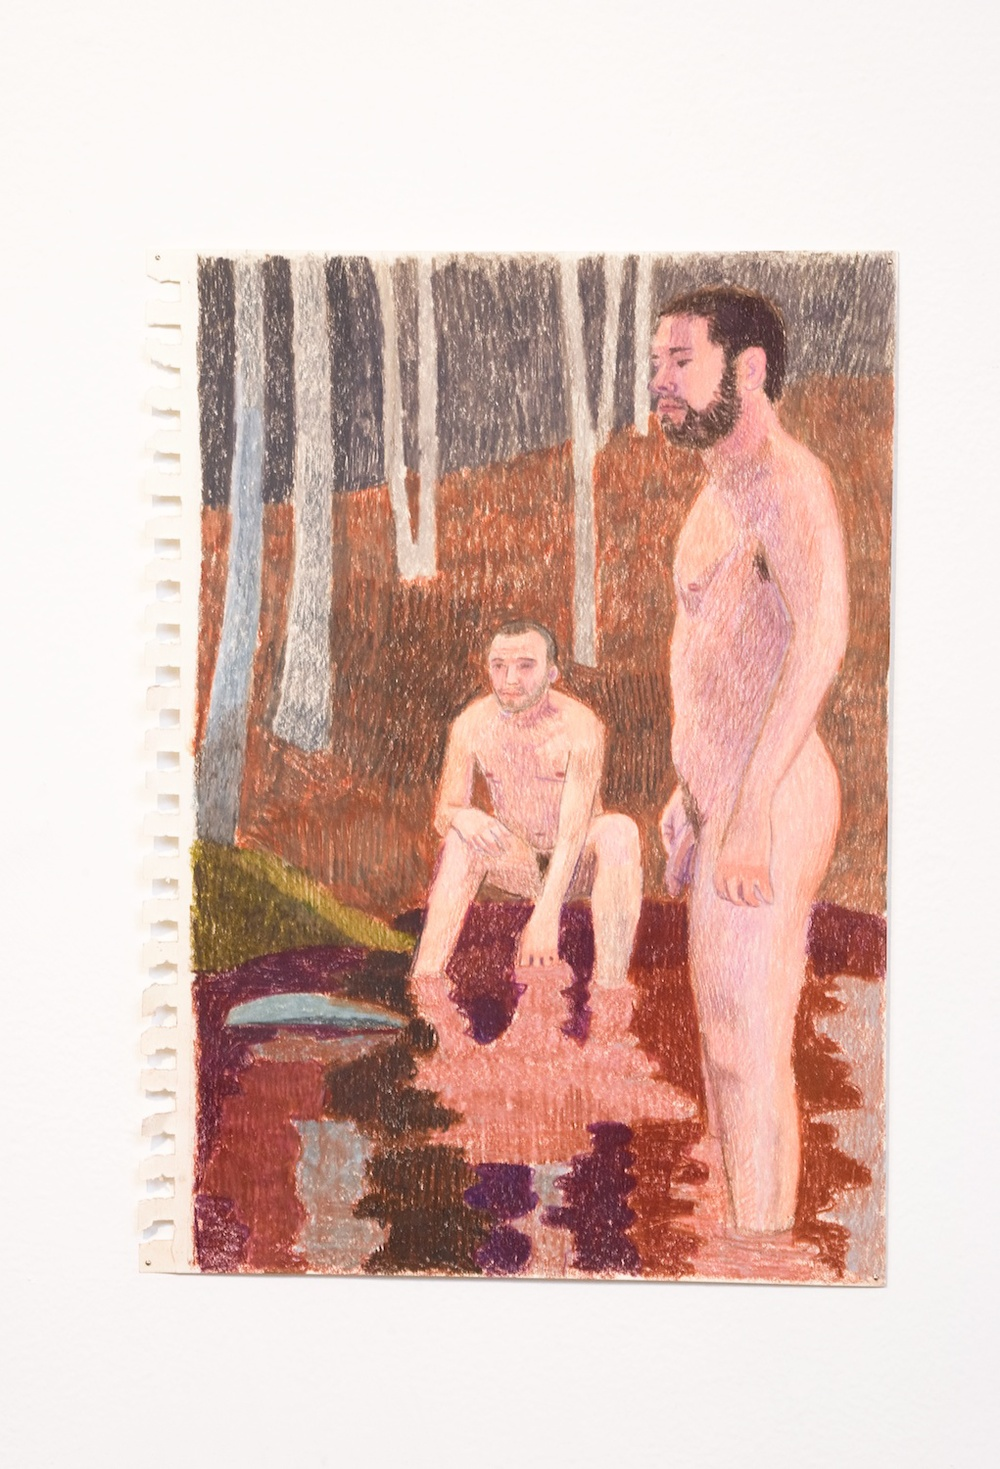 "Elijah Burgher The Blood-letting 3 2009 Colored pencil on paper 12"" x 8"" EB009"